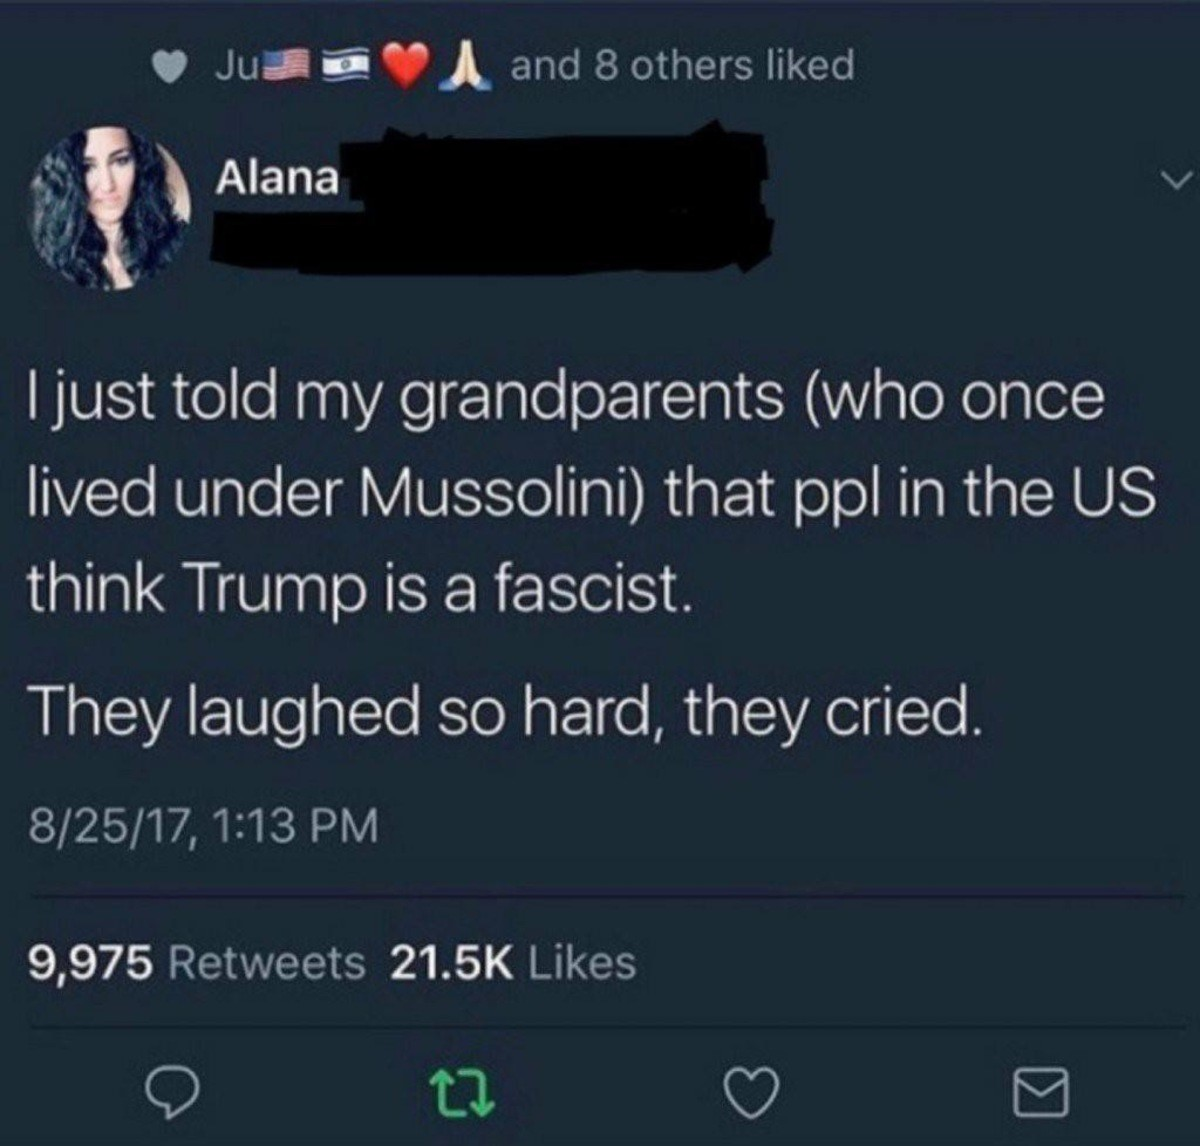 Fascist trump?. . Must told rally/ grandparents (VI/ roto C) n( C)( iii) lived under Mussolini) that ppl in the Ljs) think Trump is a fascist. They' laughed so